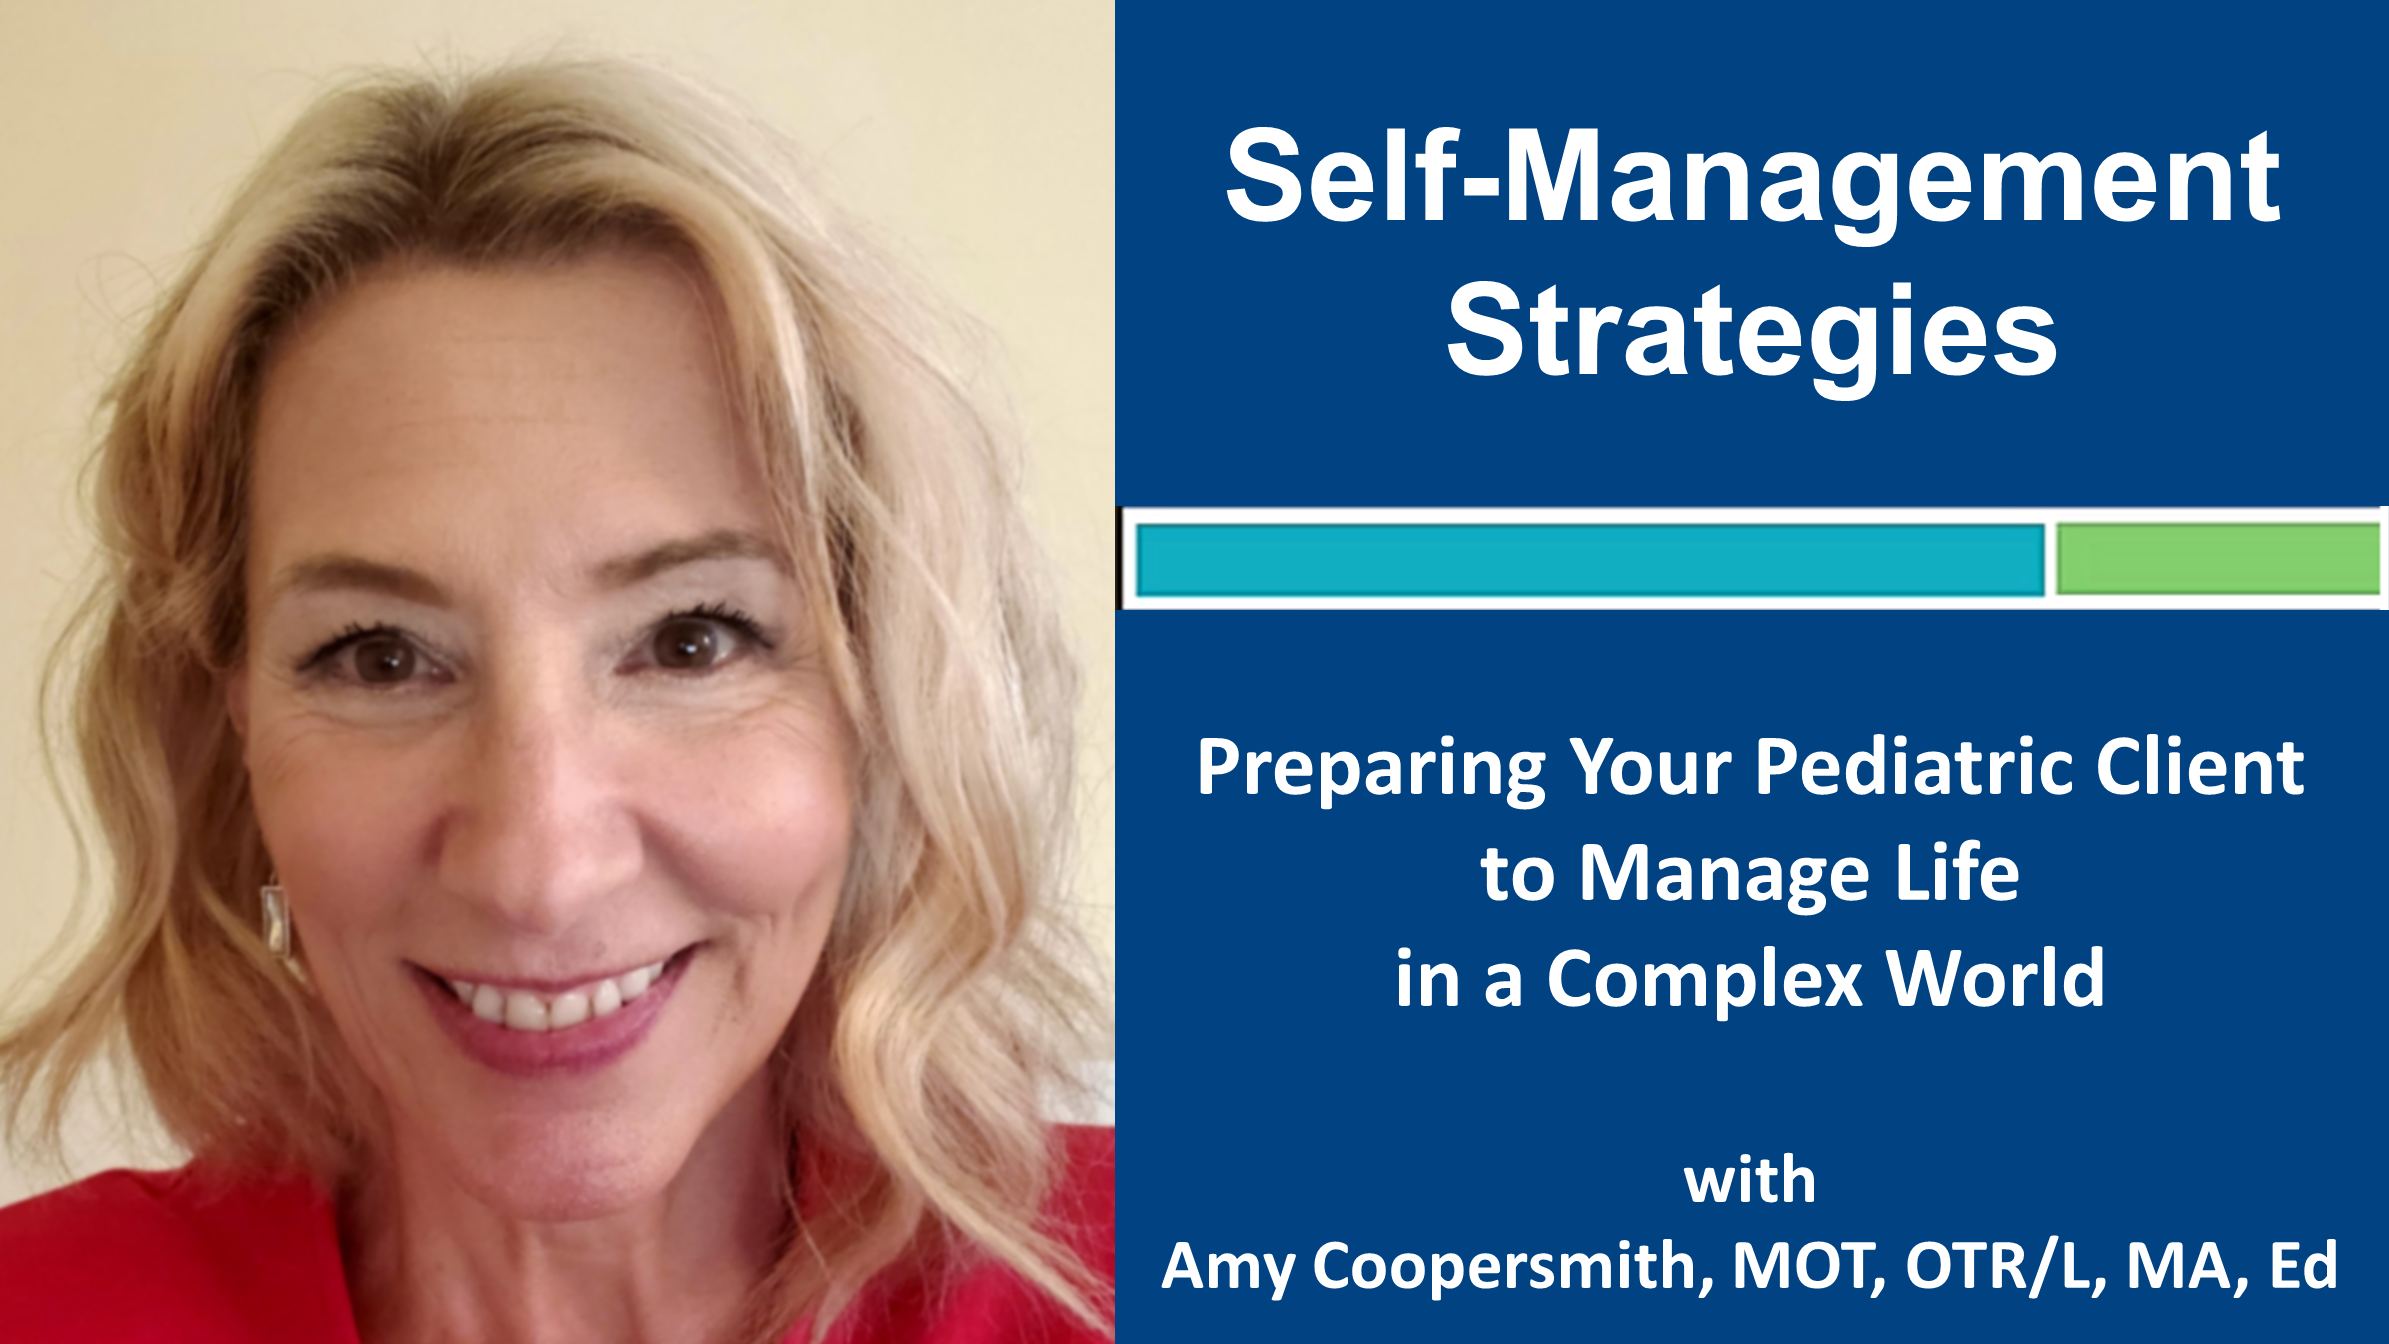 Webinar 3: Self-Management Strategies: Preparing Your Pediatric Client to Manage Life in a Complex World